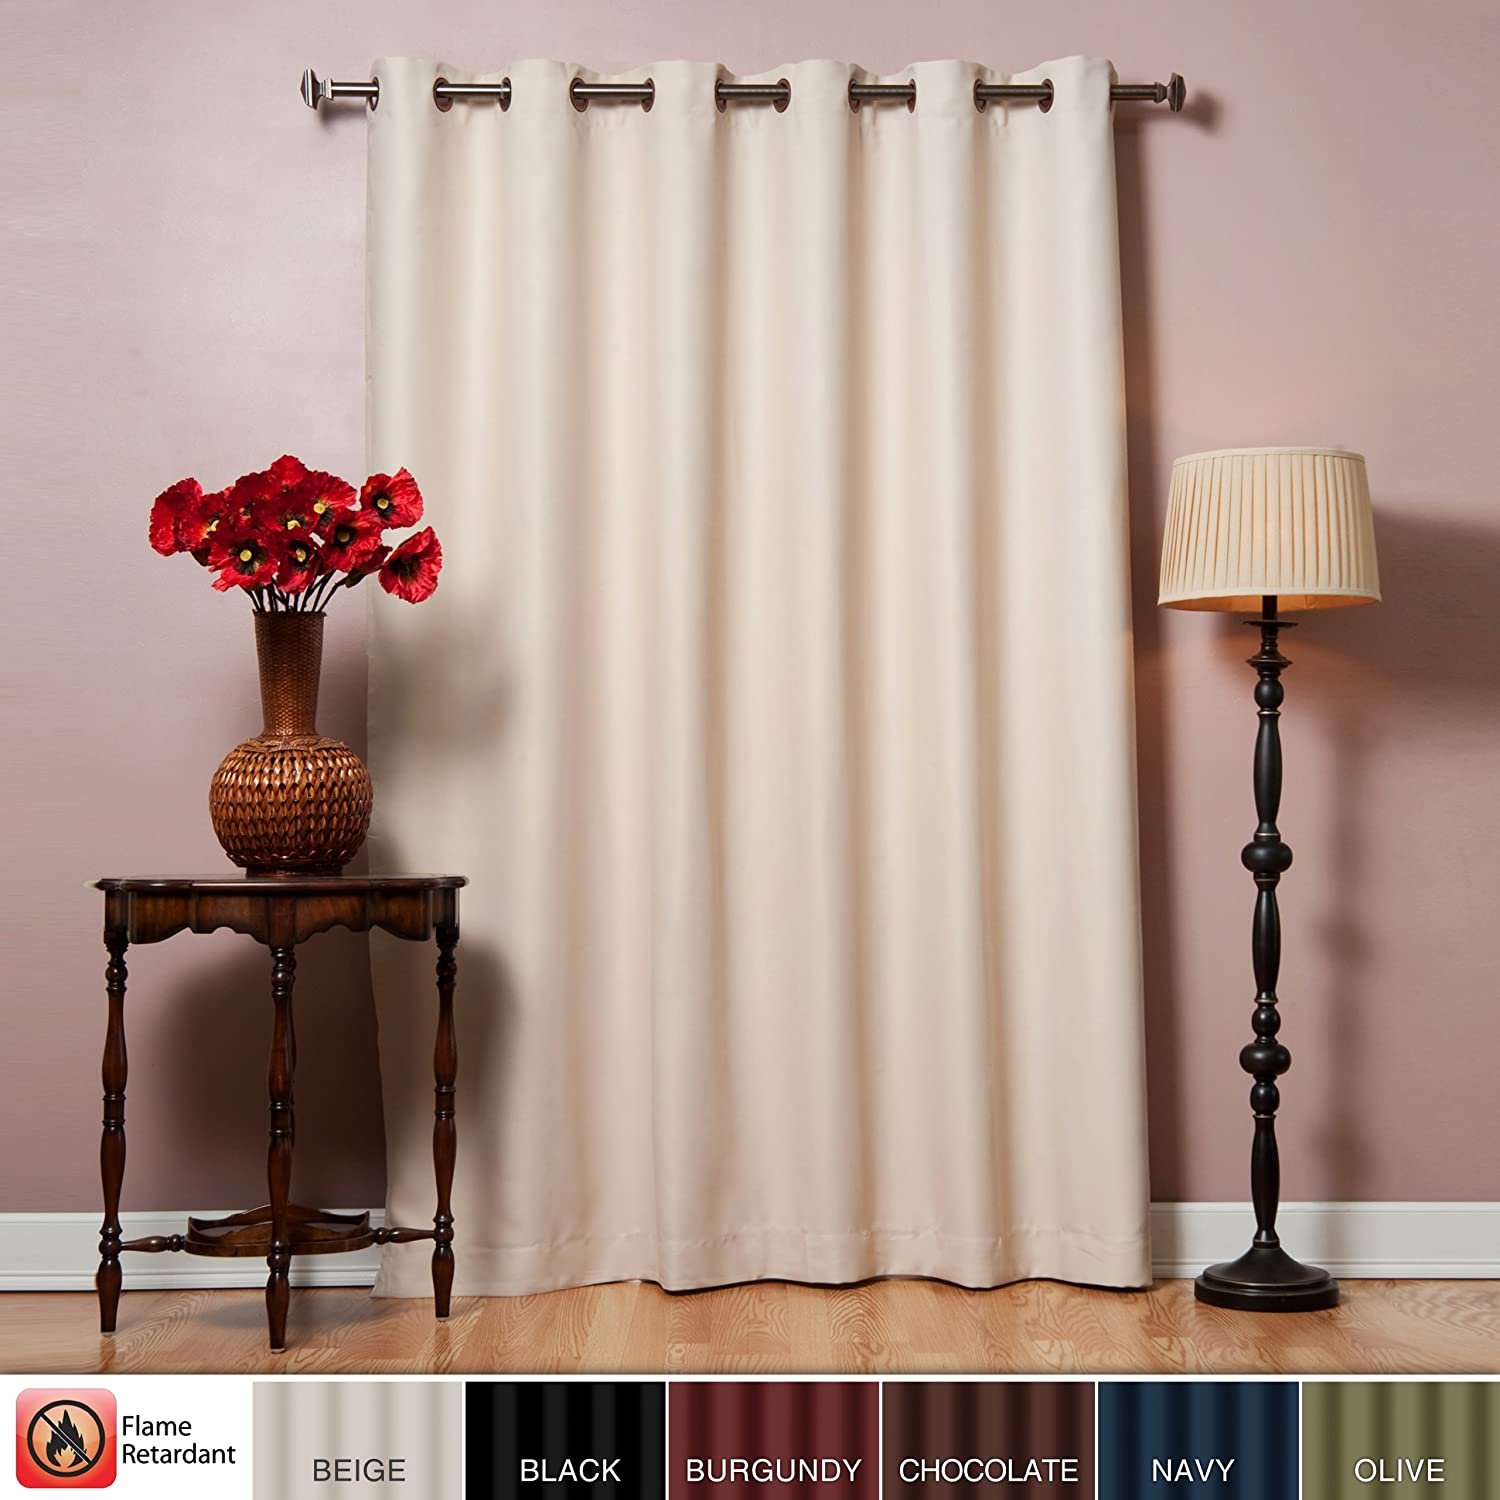 Thermal drapes for sliding glass doors pictures to pin on pinterest